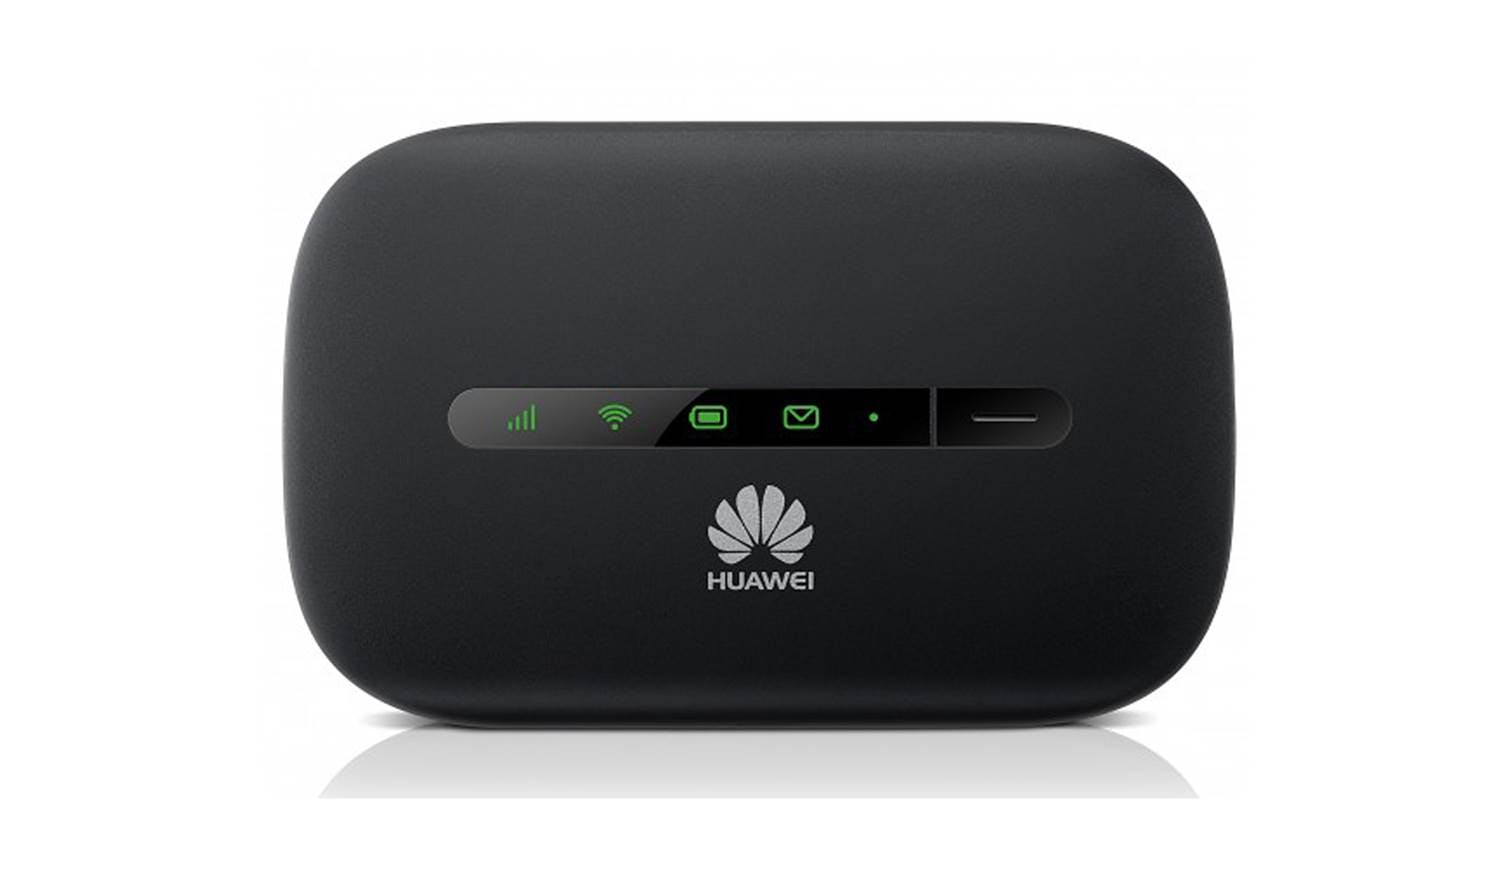 Huawei E5330 Mobile Wi-Fi dongle